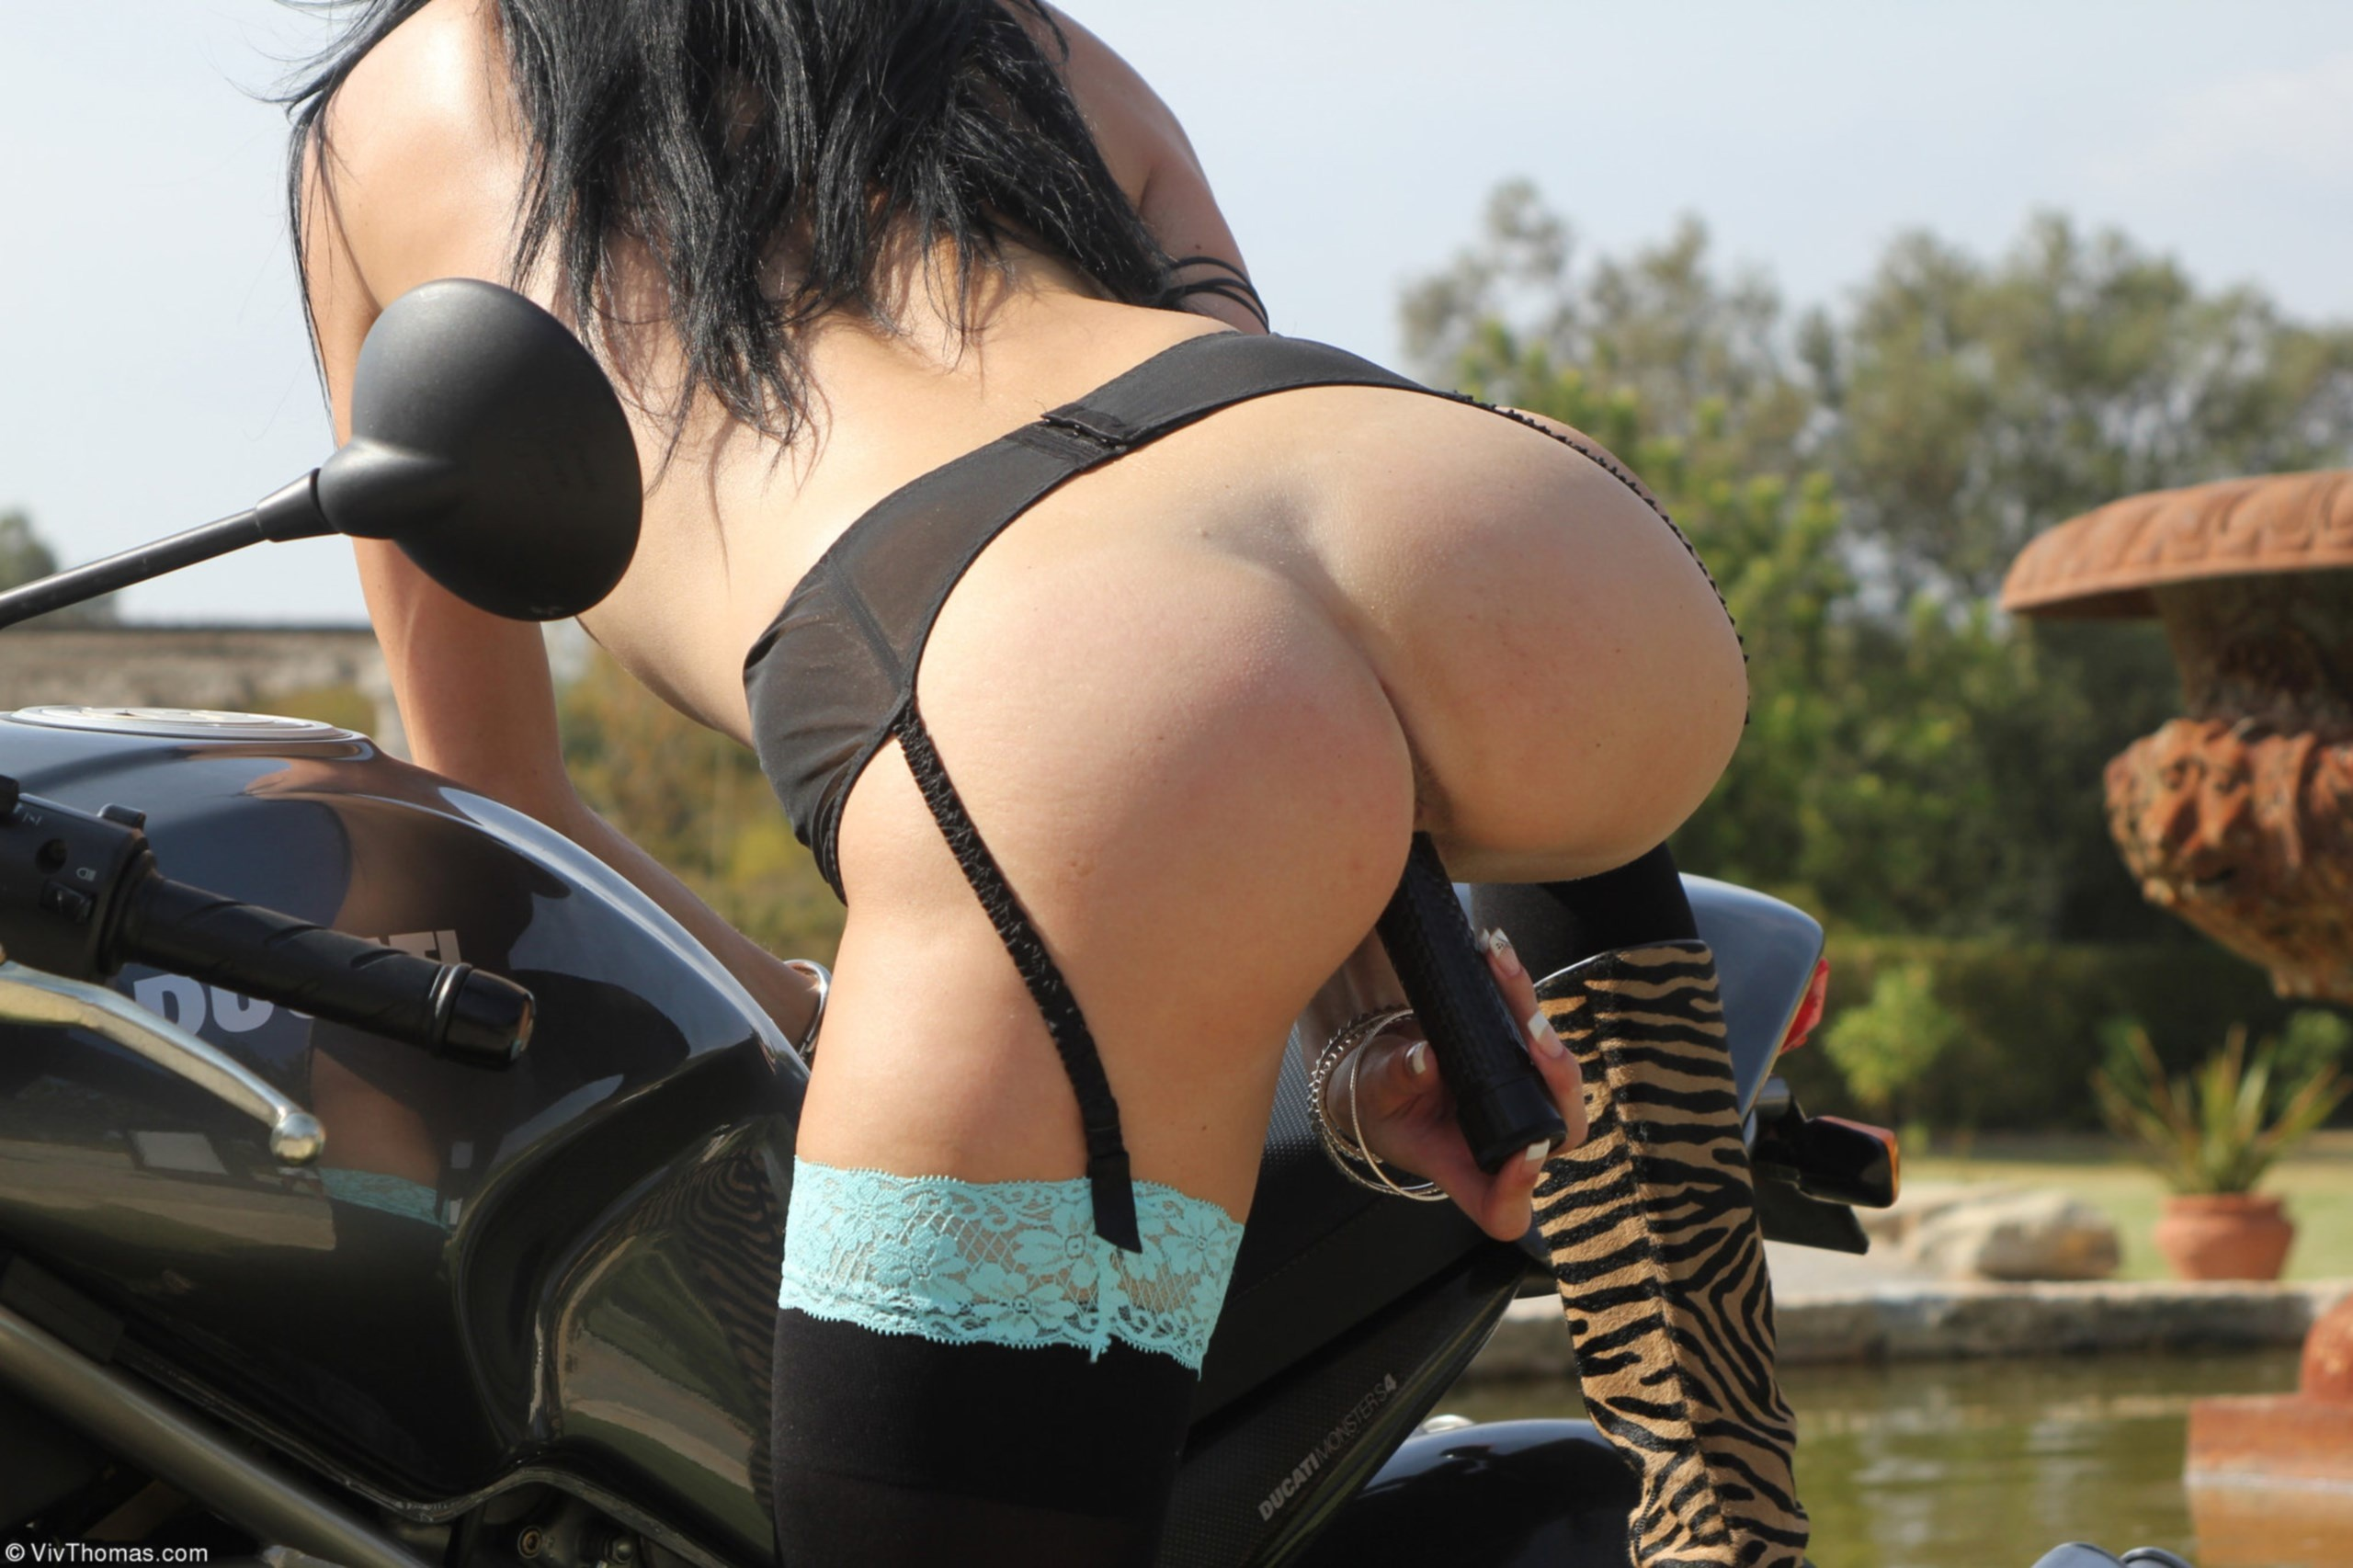 Sexy Broads Girls On Dildo Bikes